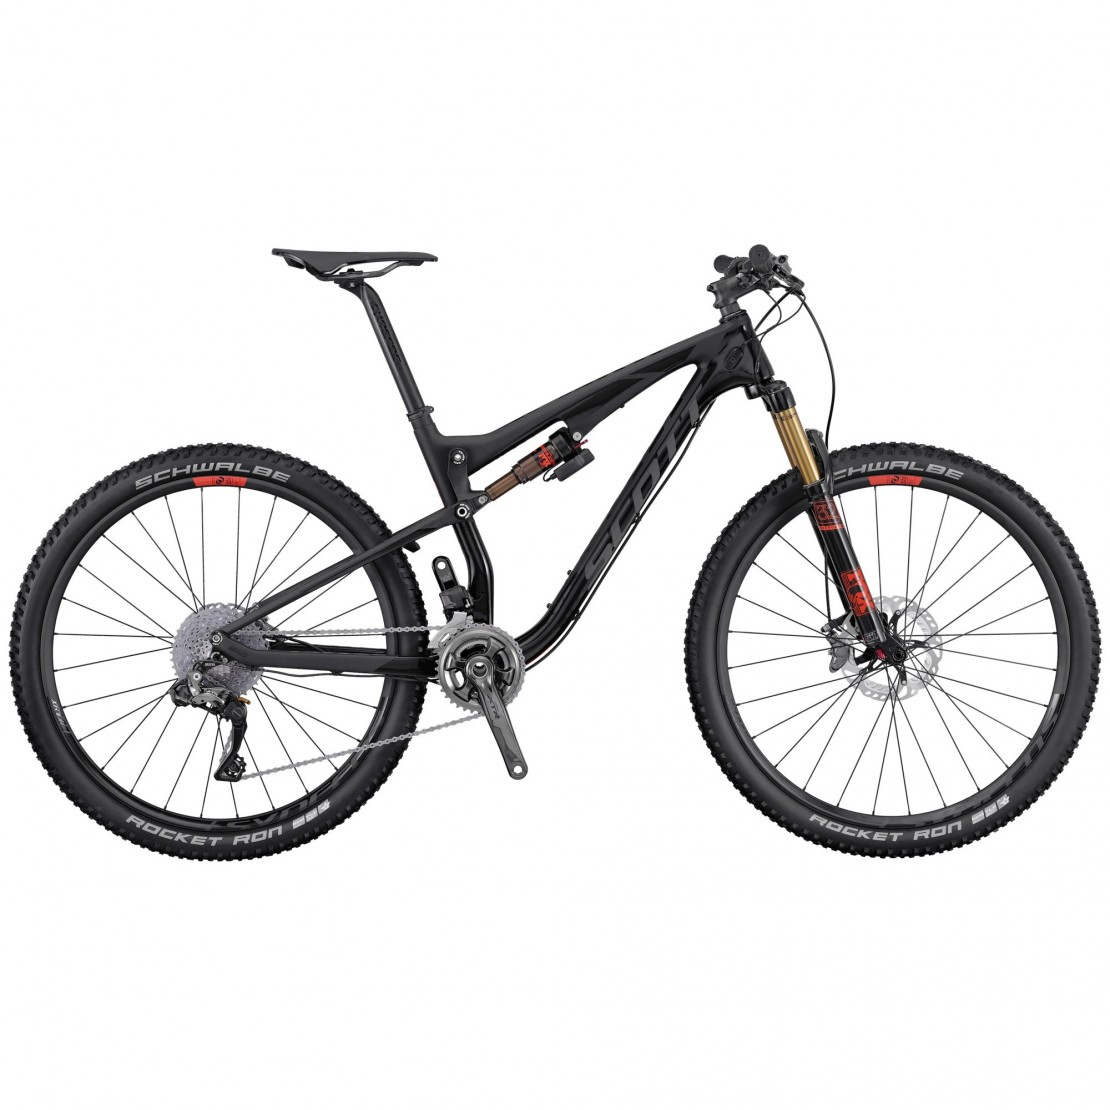 Spark 700 Ultimate 2016 - 27.5 Mountain Bike